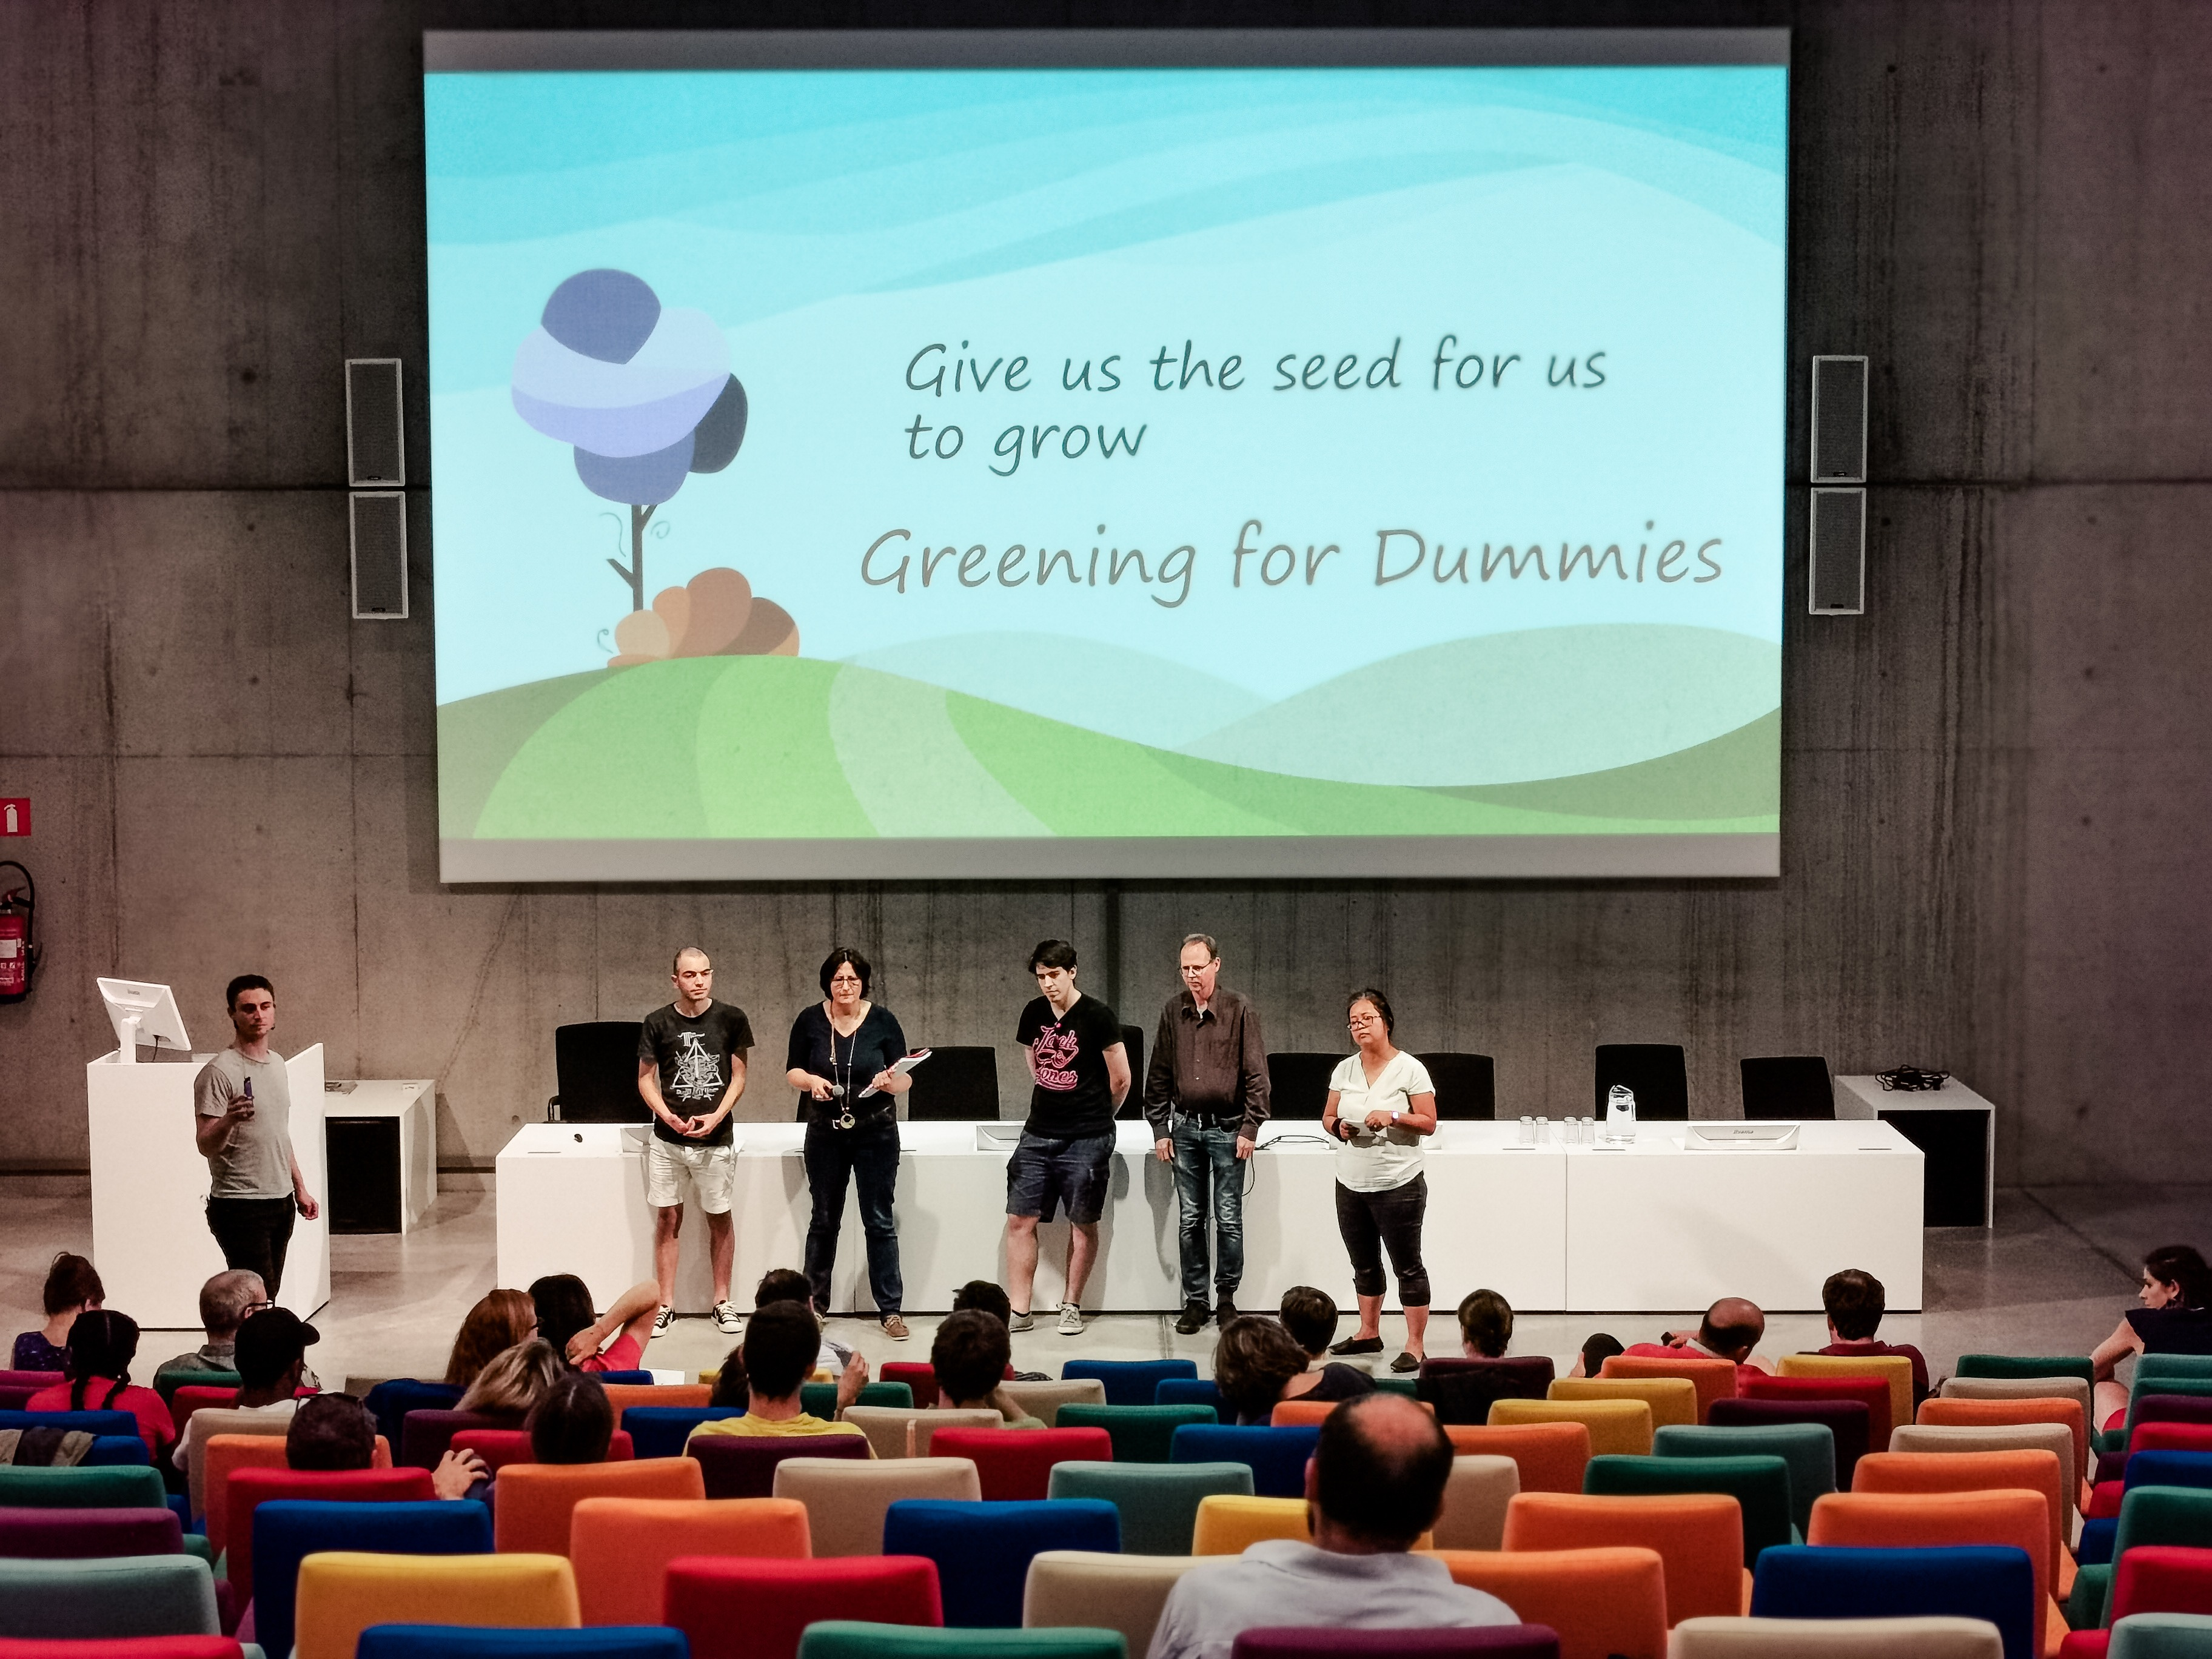 ideate for climate solution greening for dummies